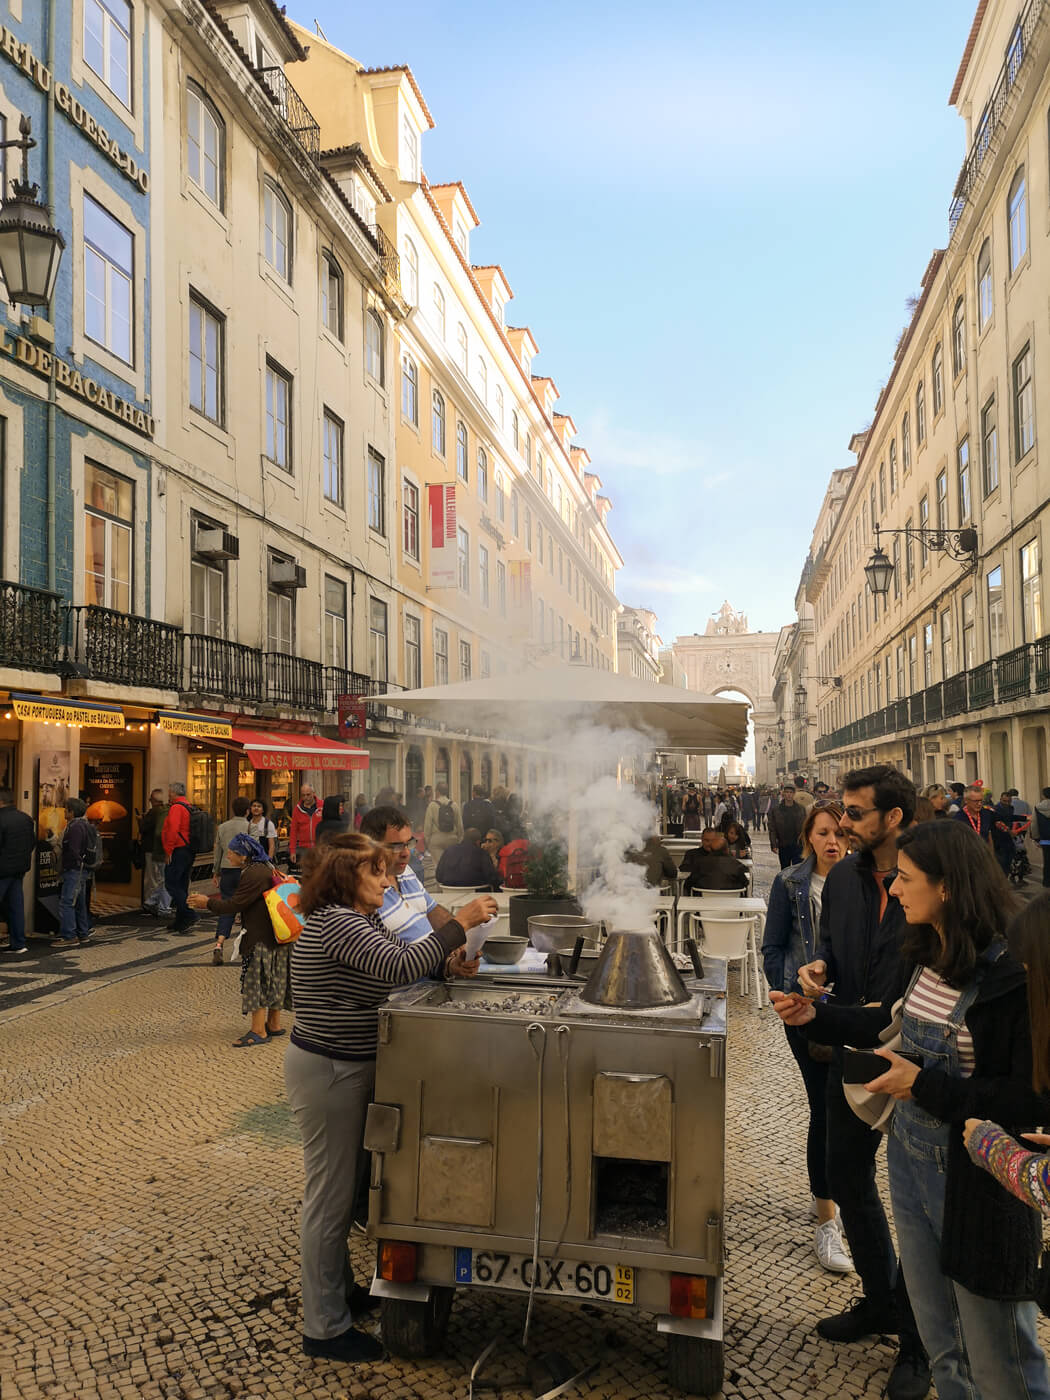 A street food vendor in the middle of downtown Lisbon.